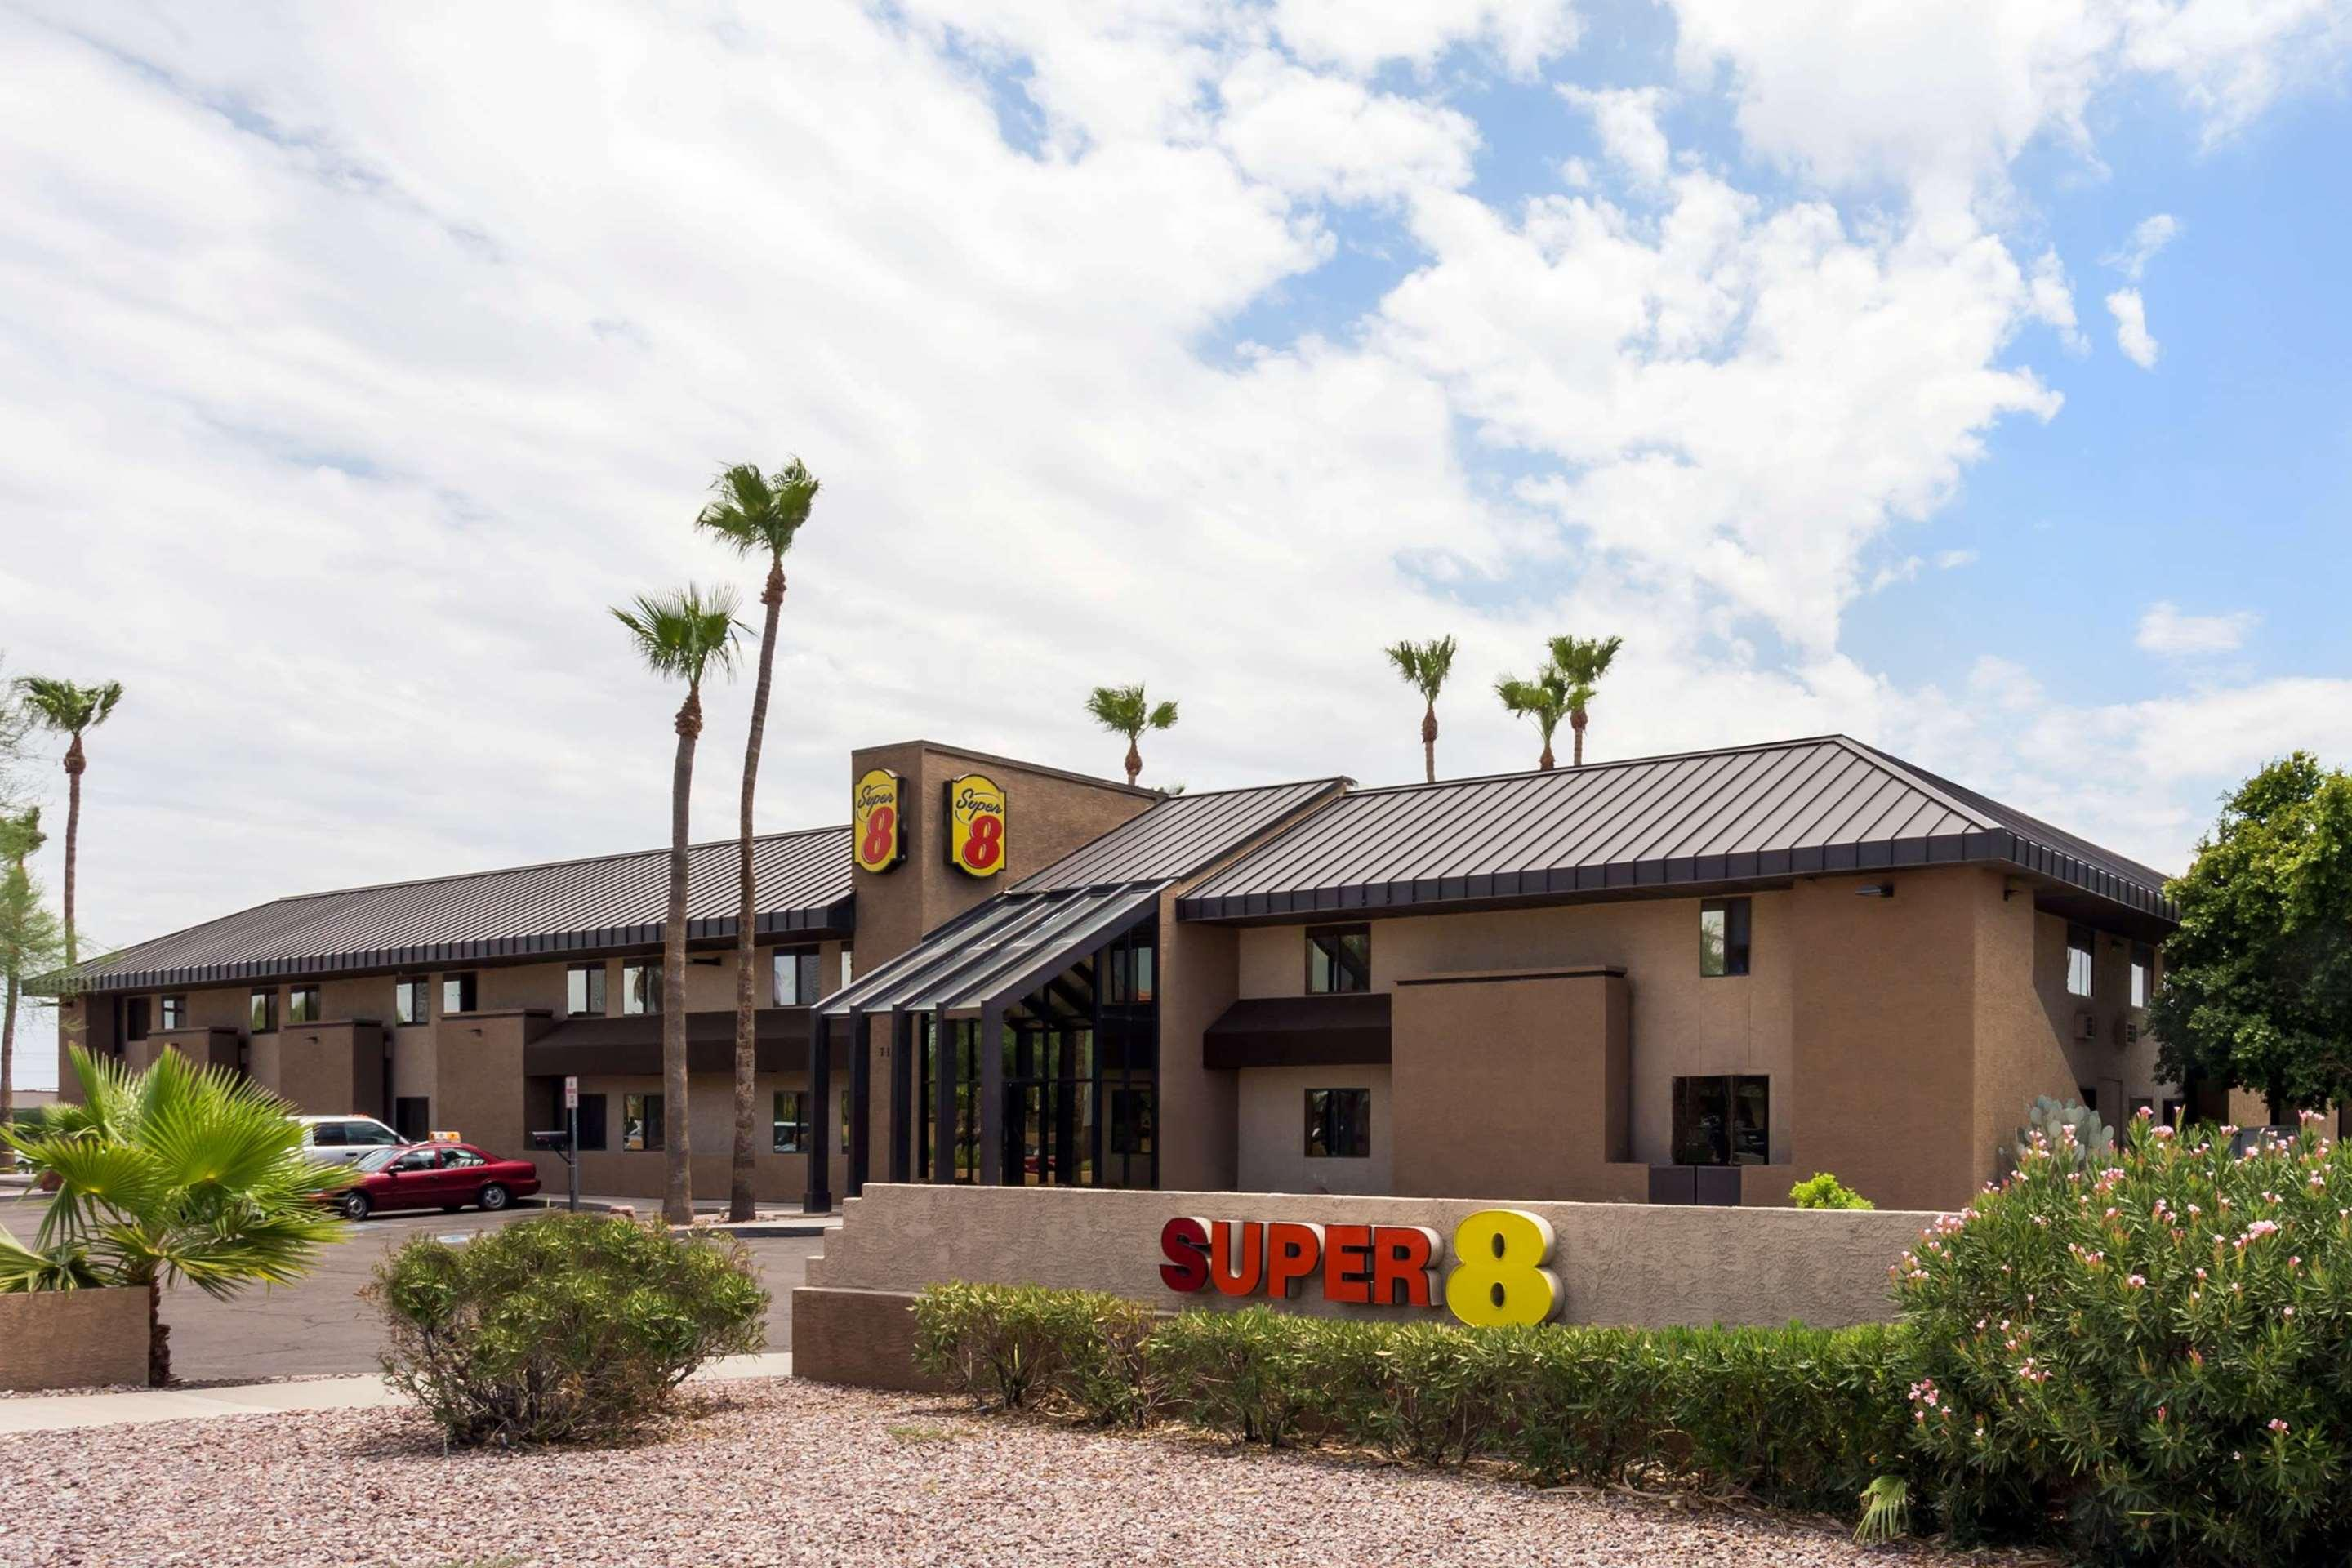 Super 8 by Wyndham Chandler Phoenix